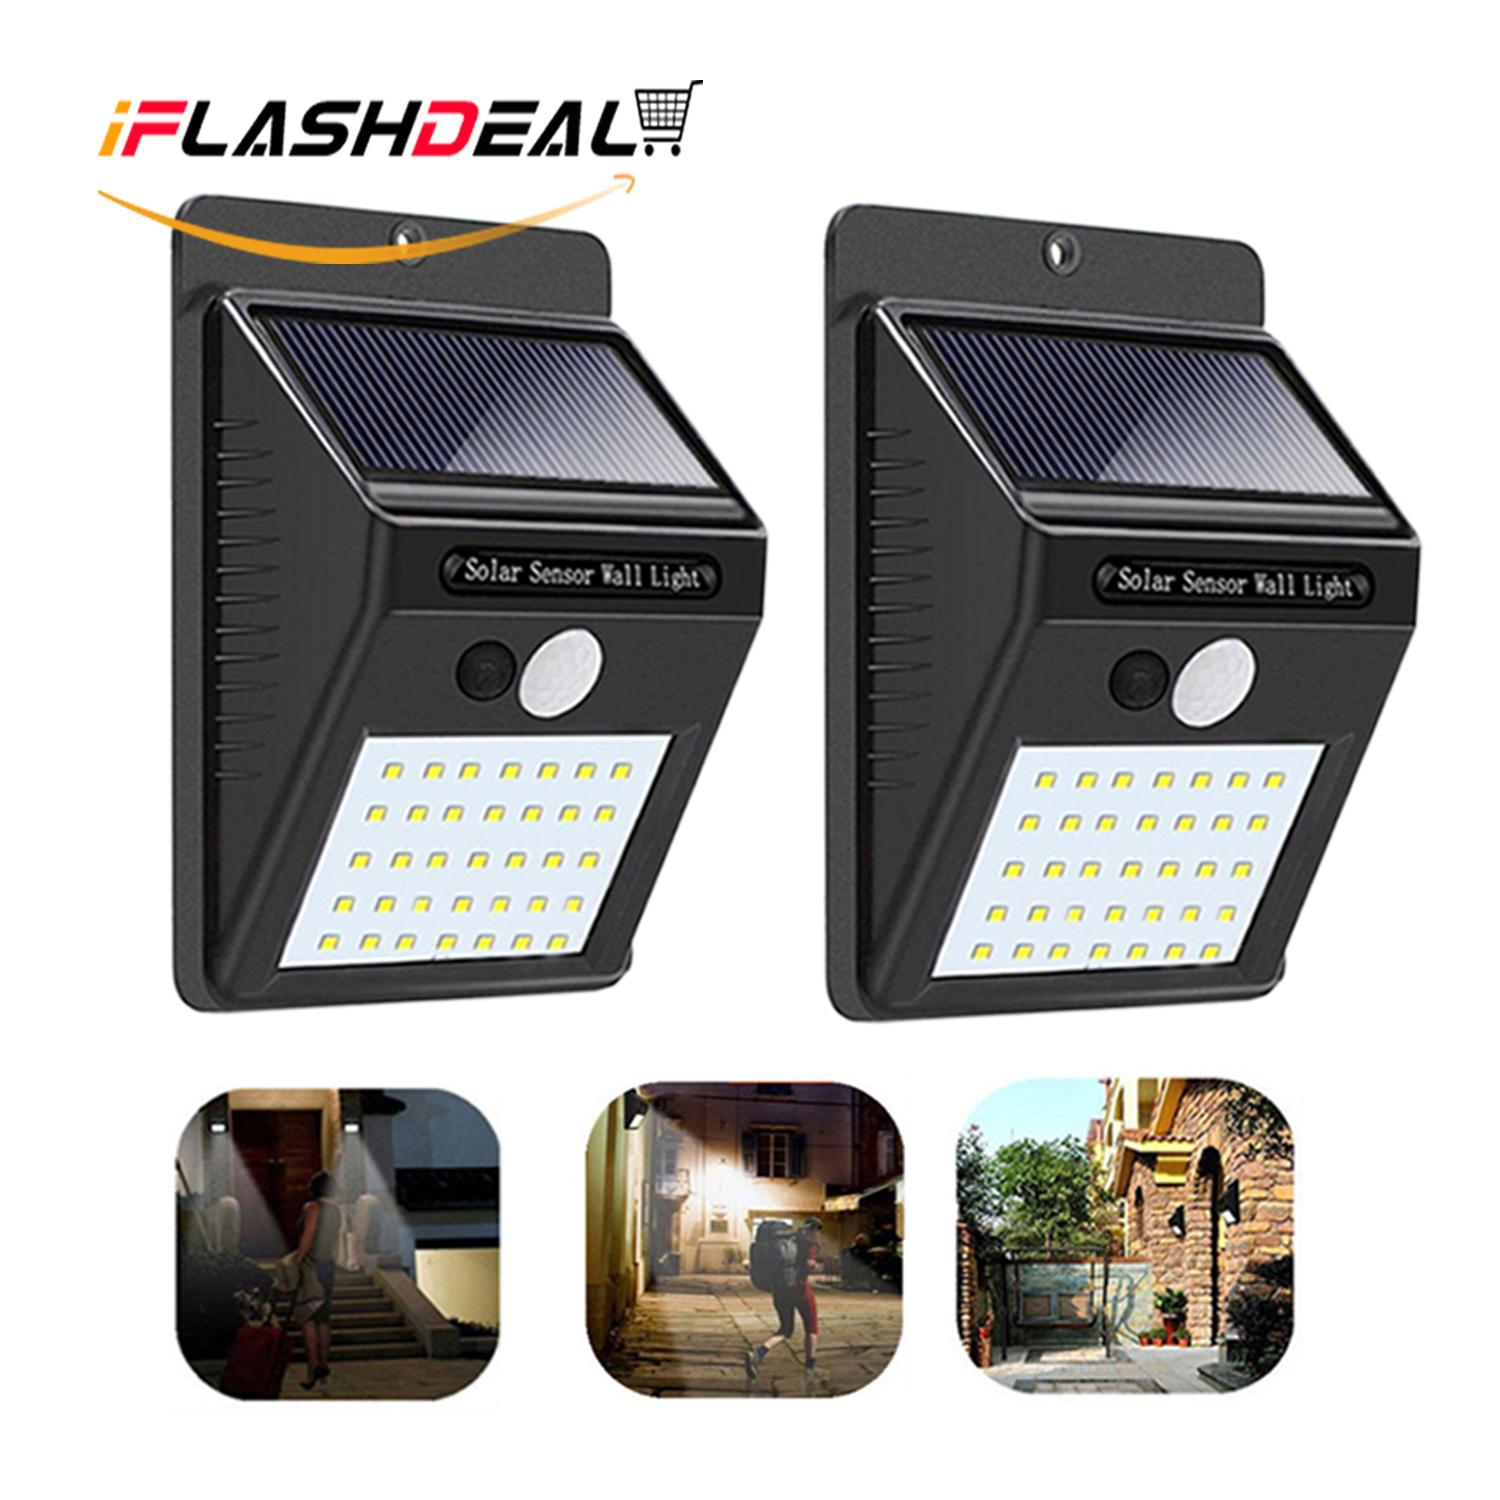 iFlashDeal 35 LED Solar Powered Wall Light Outdoor Lighting Waterproof Wall Lamp Motion Sensor Wireless Security Lights for Driveway Patio Garden Path 【2 Pack】